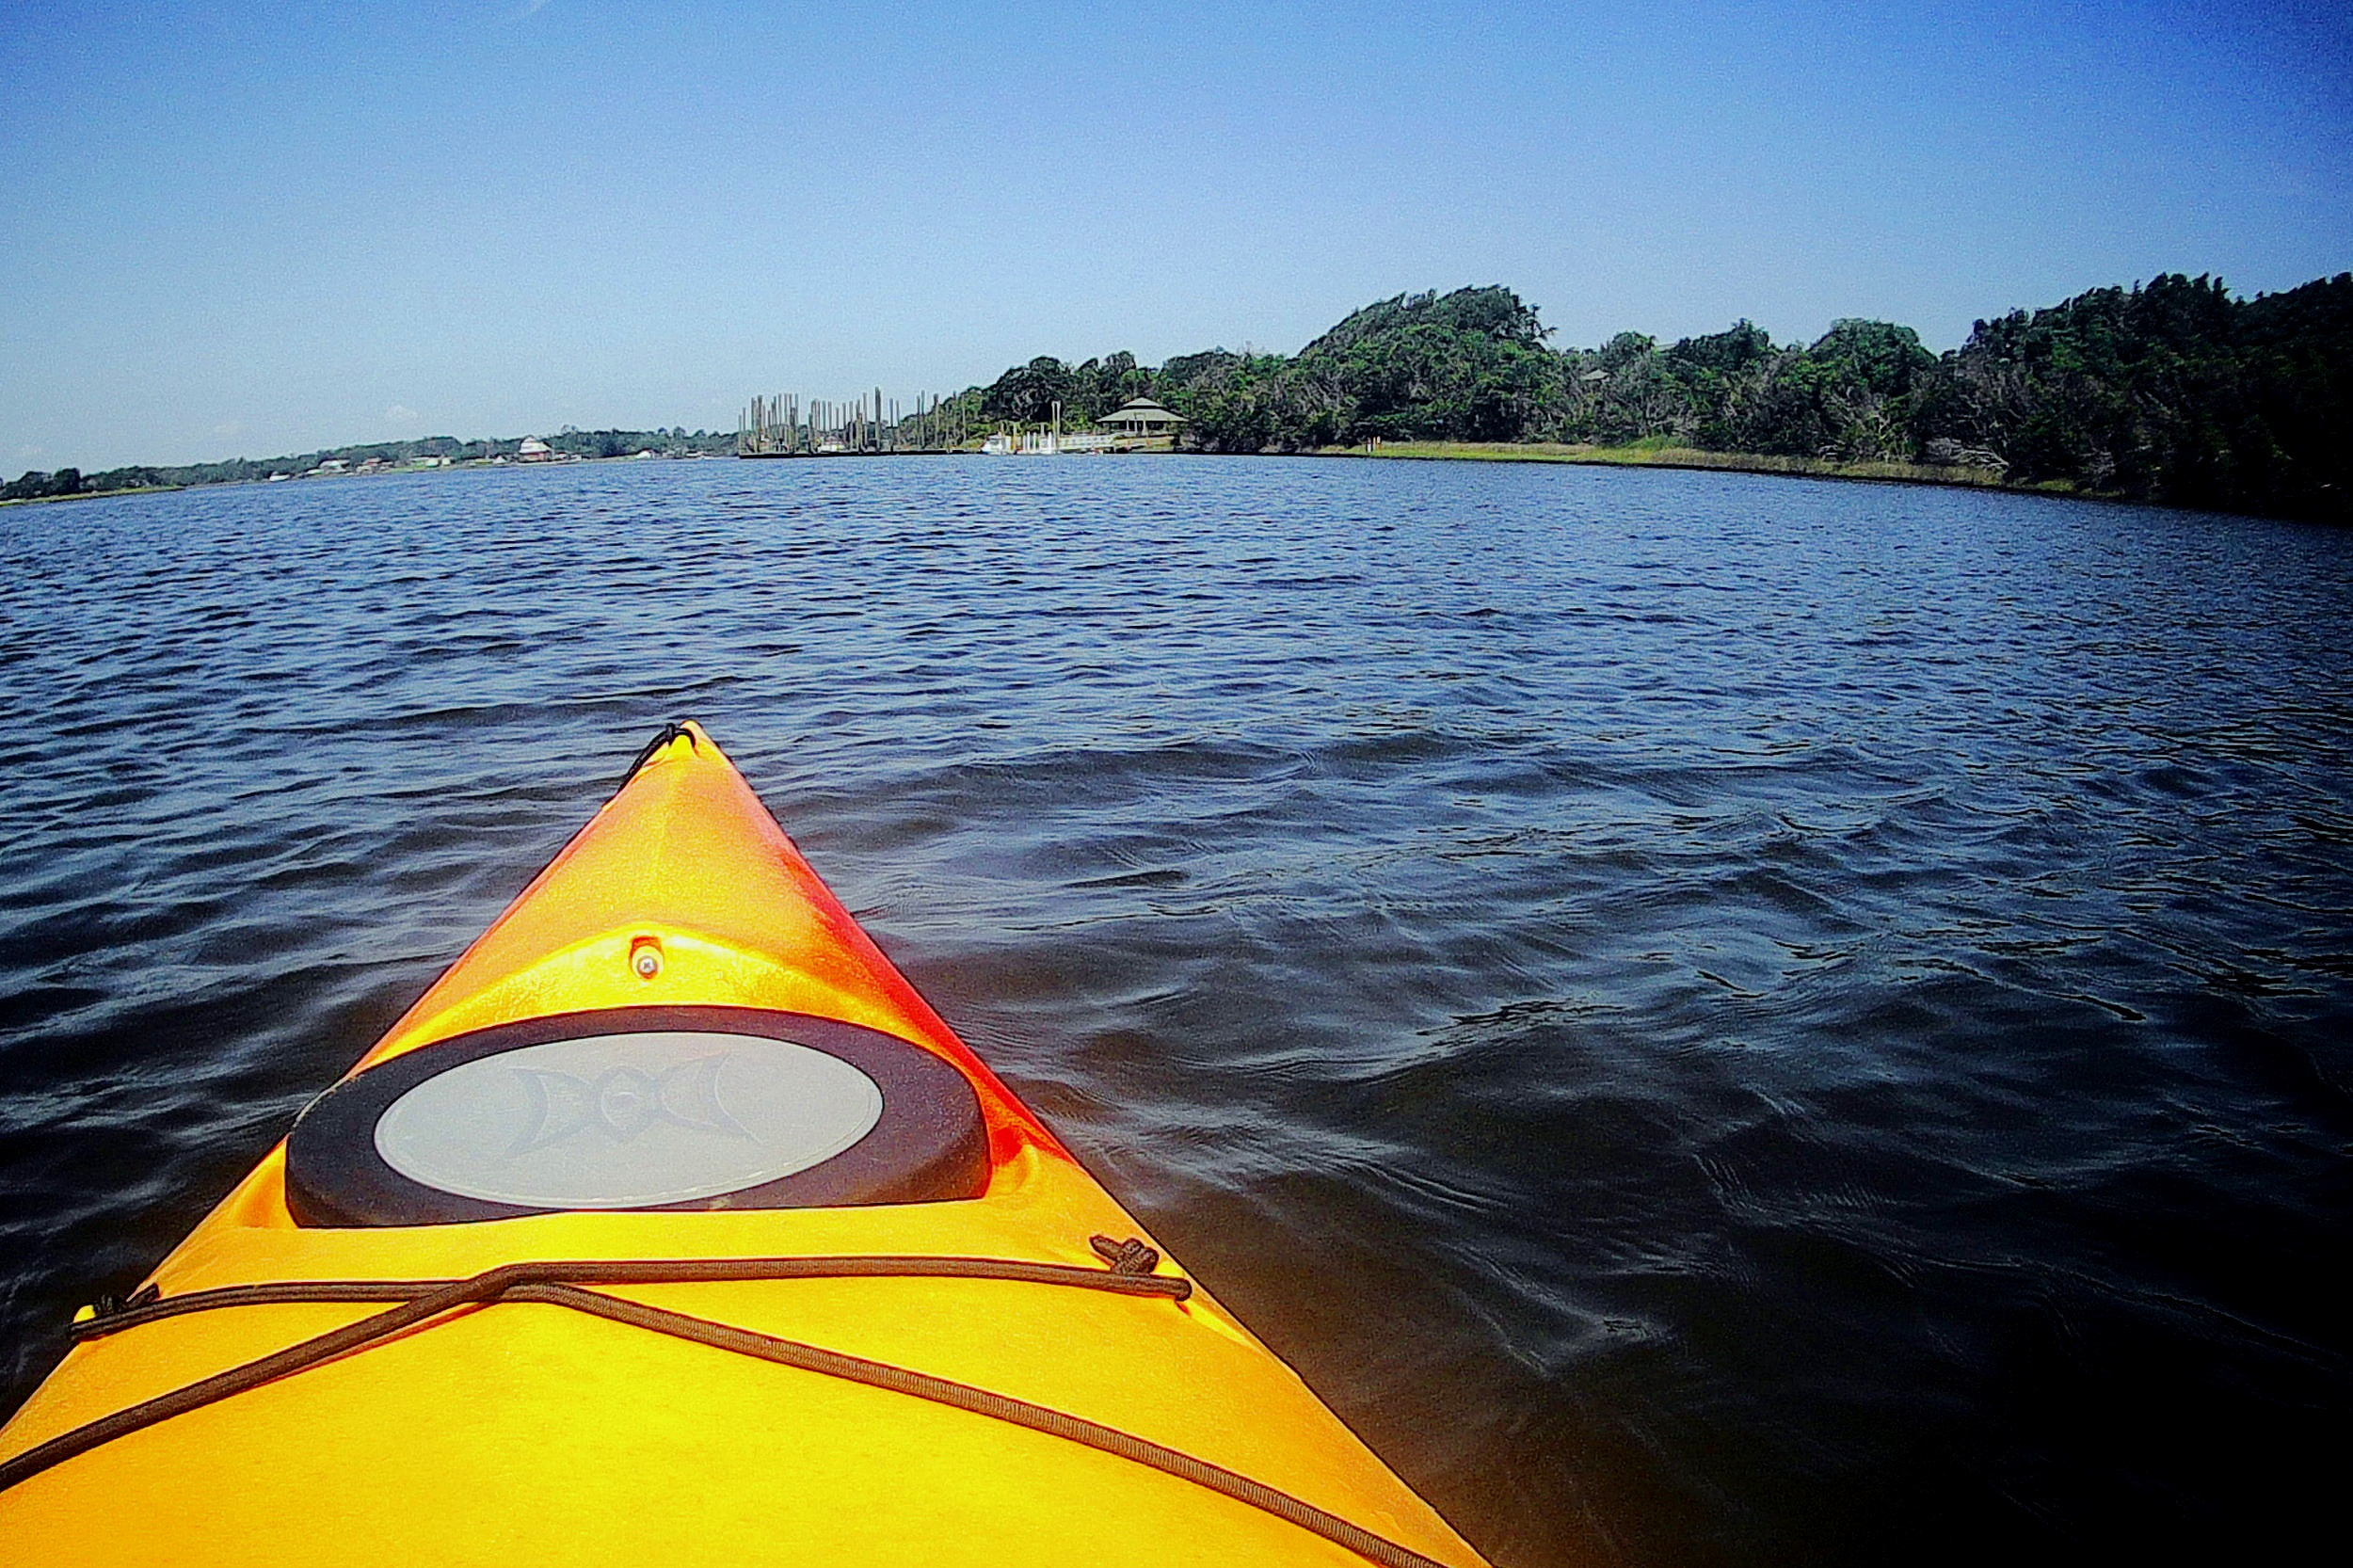 Kayaking is one of the best ways to enjoy your time at Hammock's Beach State Park.